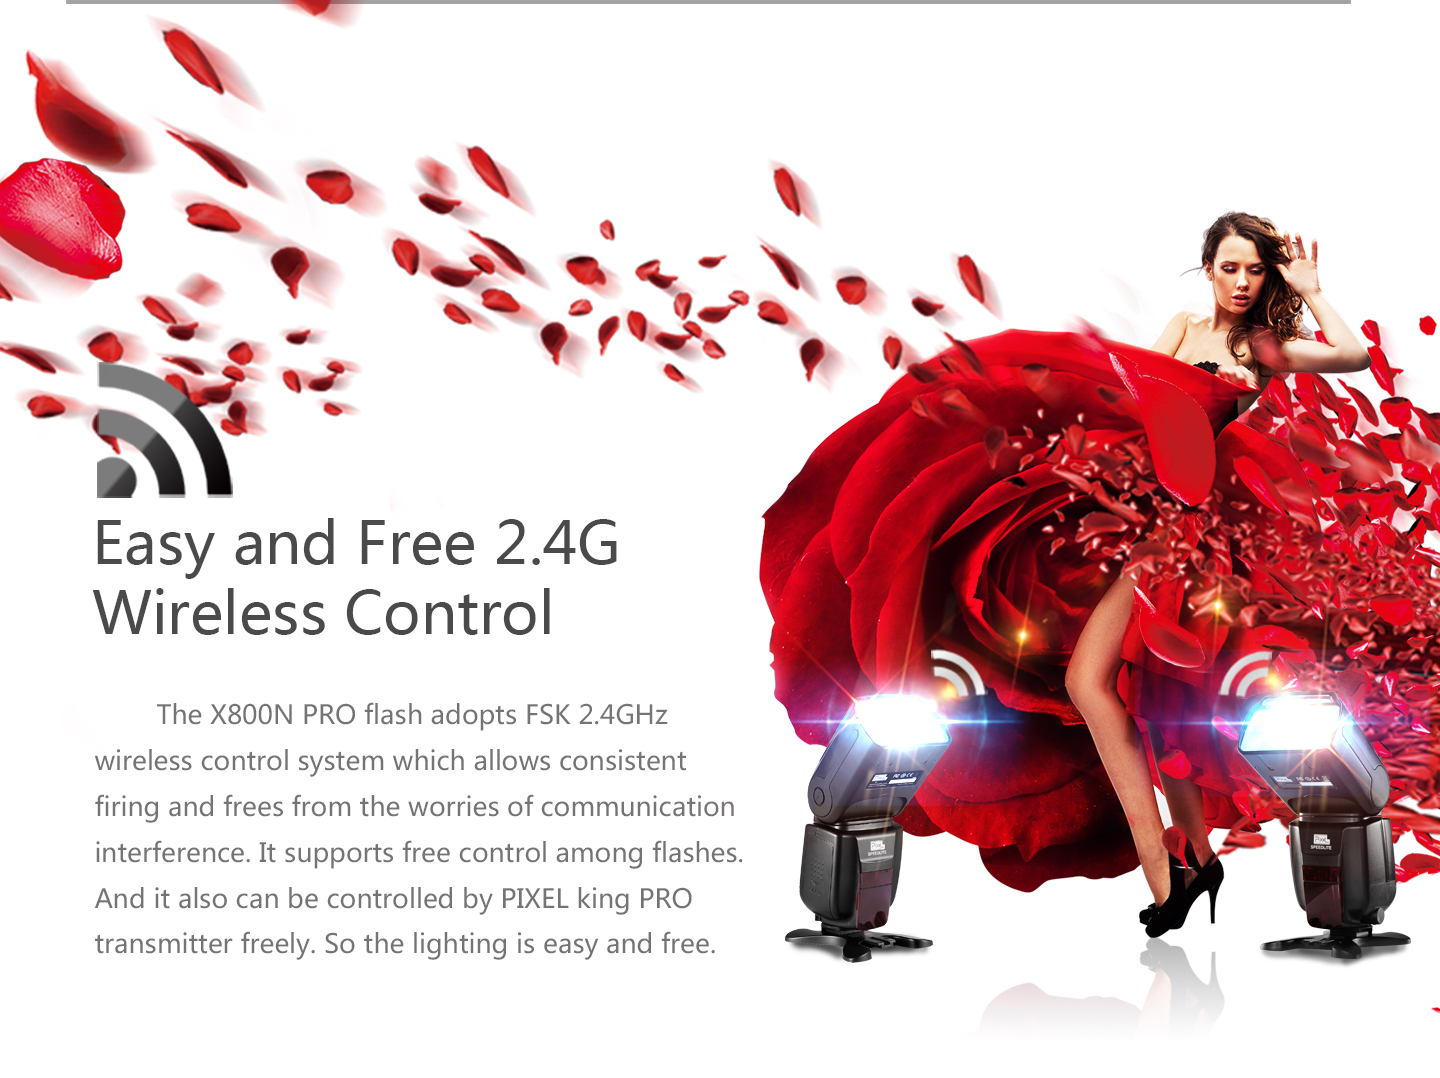 Easy and Free 2.4G Wireless Control